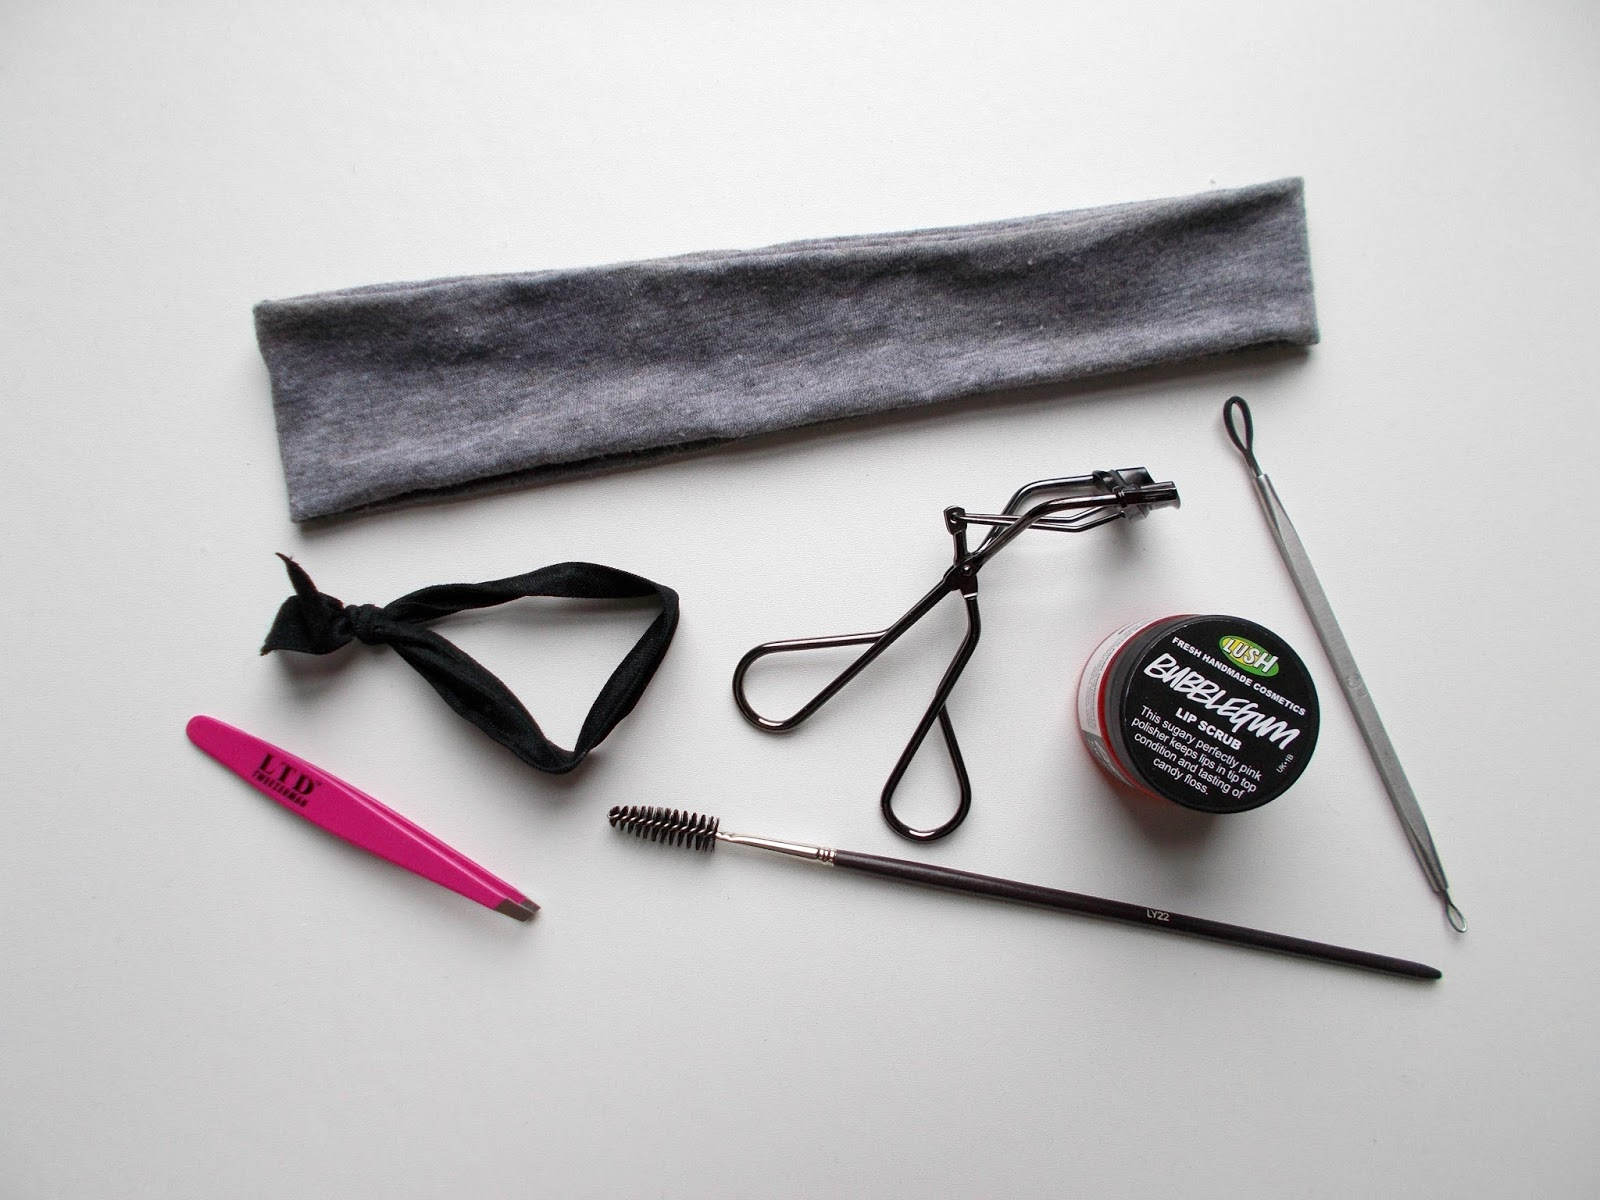 beauty tools i can't live without popbands tweezerman shiseido lush lip scrub blackhead remover